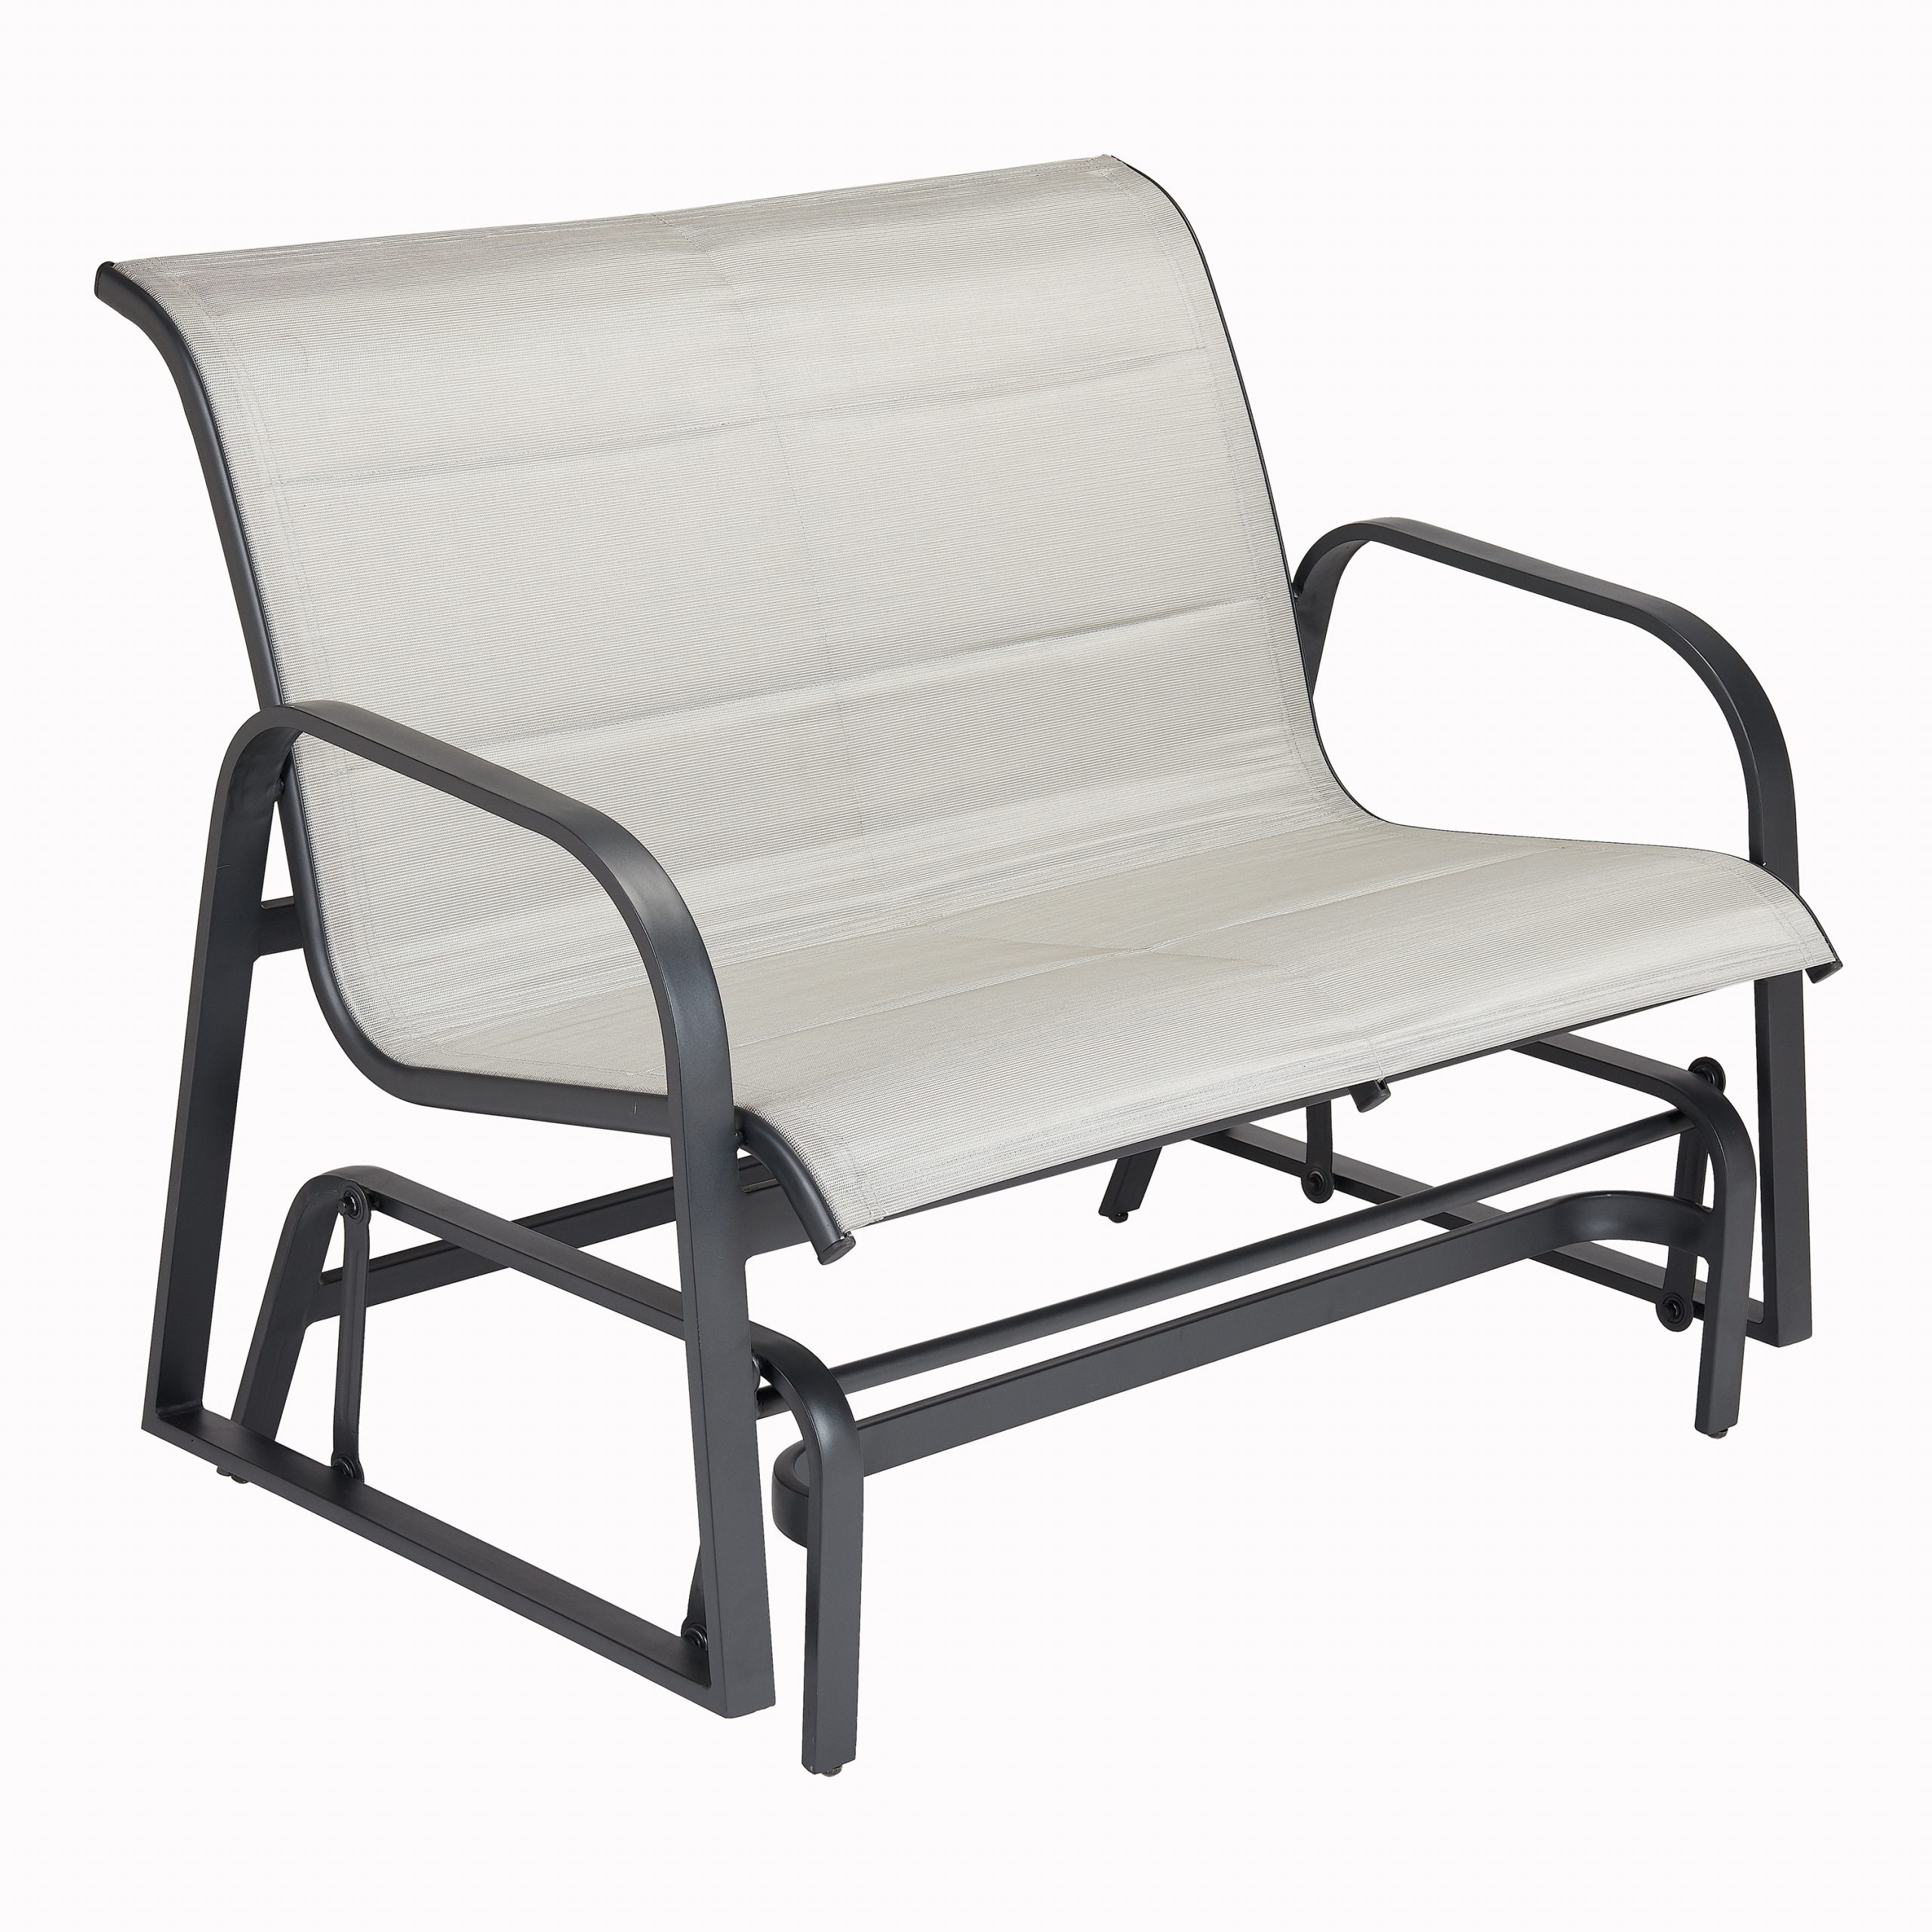 Padded Sling Double Glider Benches Throughout Most Recent Better Homes & Gardens Montrose Padded Sling Glider Bench – Walmart (View 8 of 30)